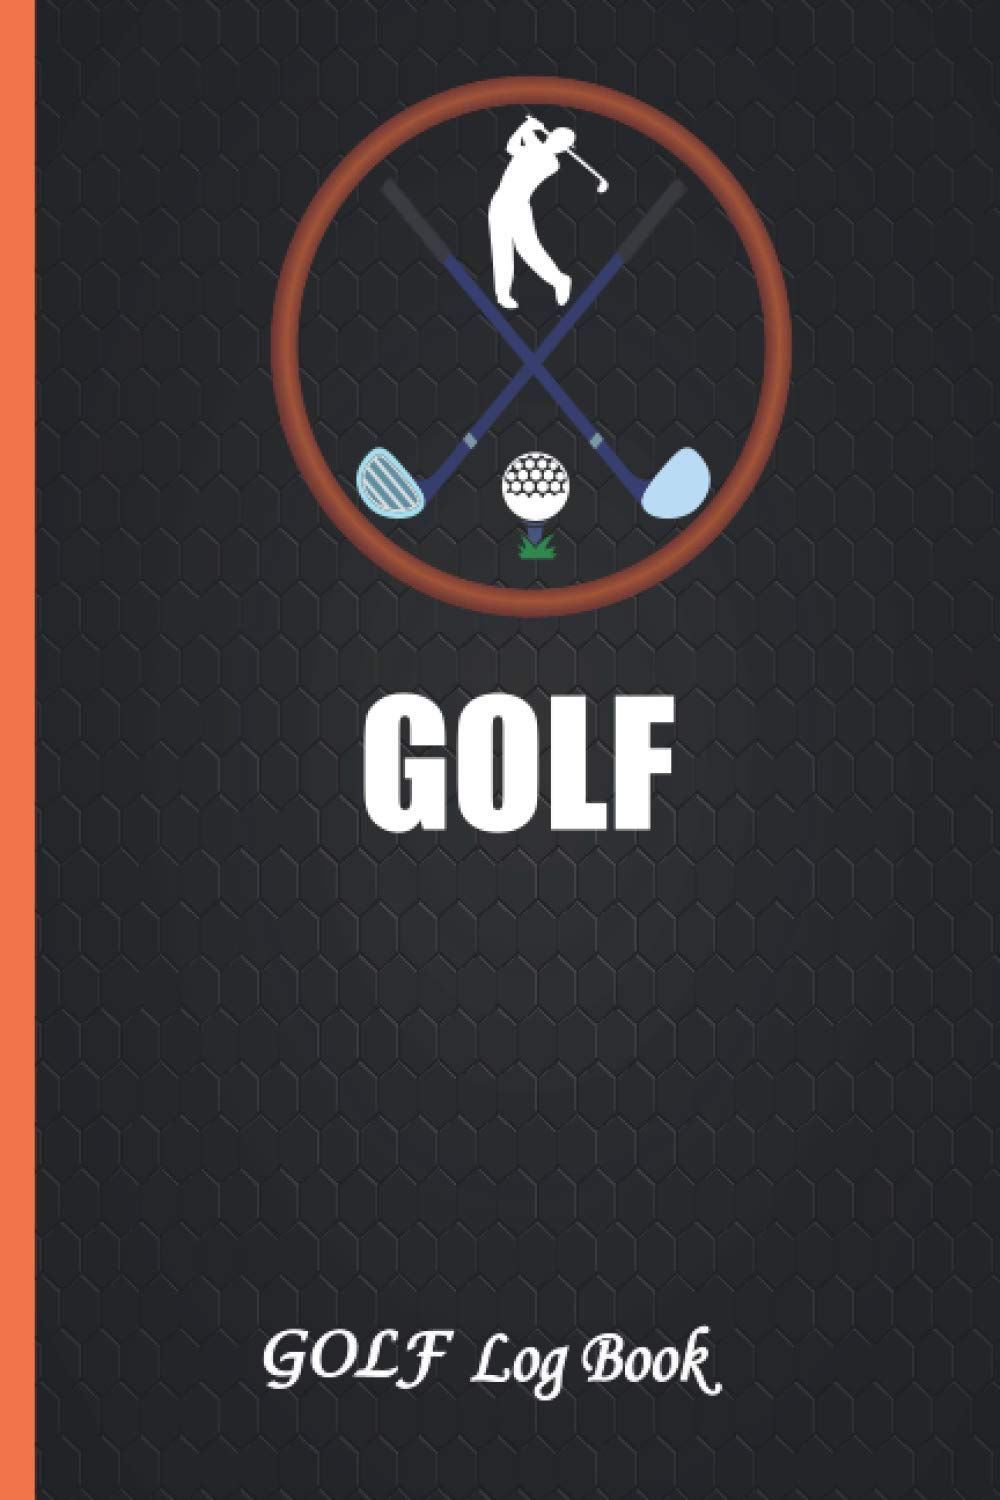 Golf Log Book: Golf Score Book, Golf Journal Tracking Your Game, Gifts For Golfers Men and Women